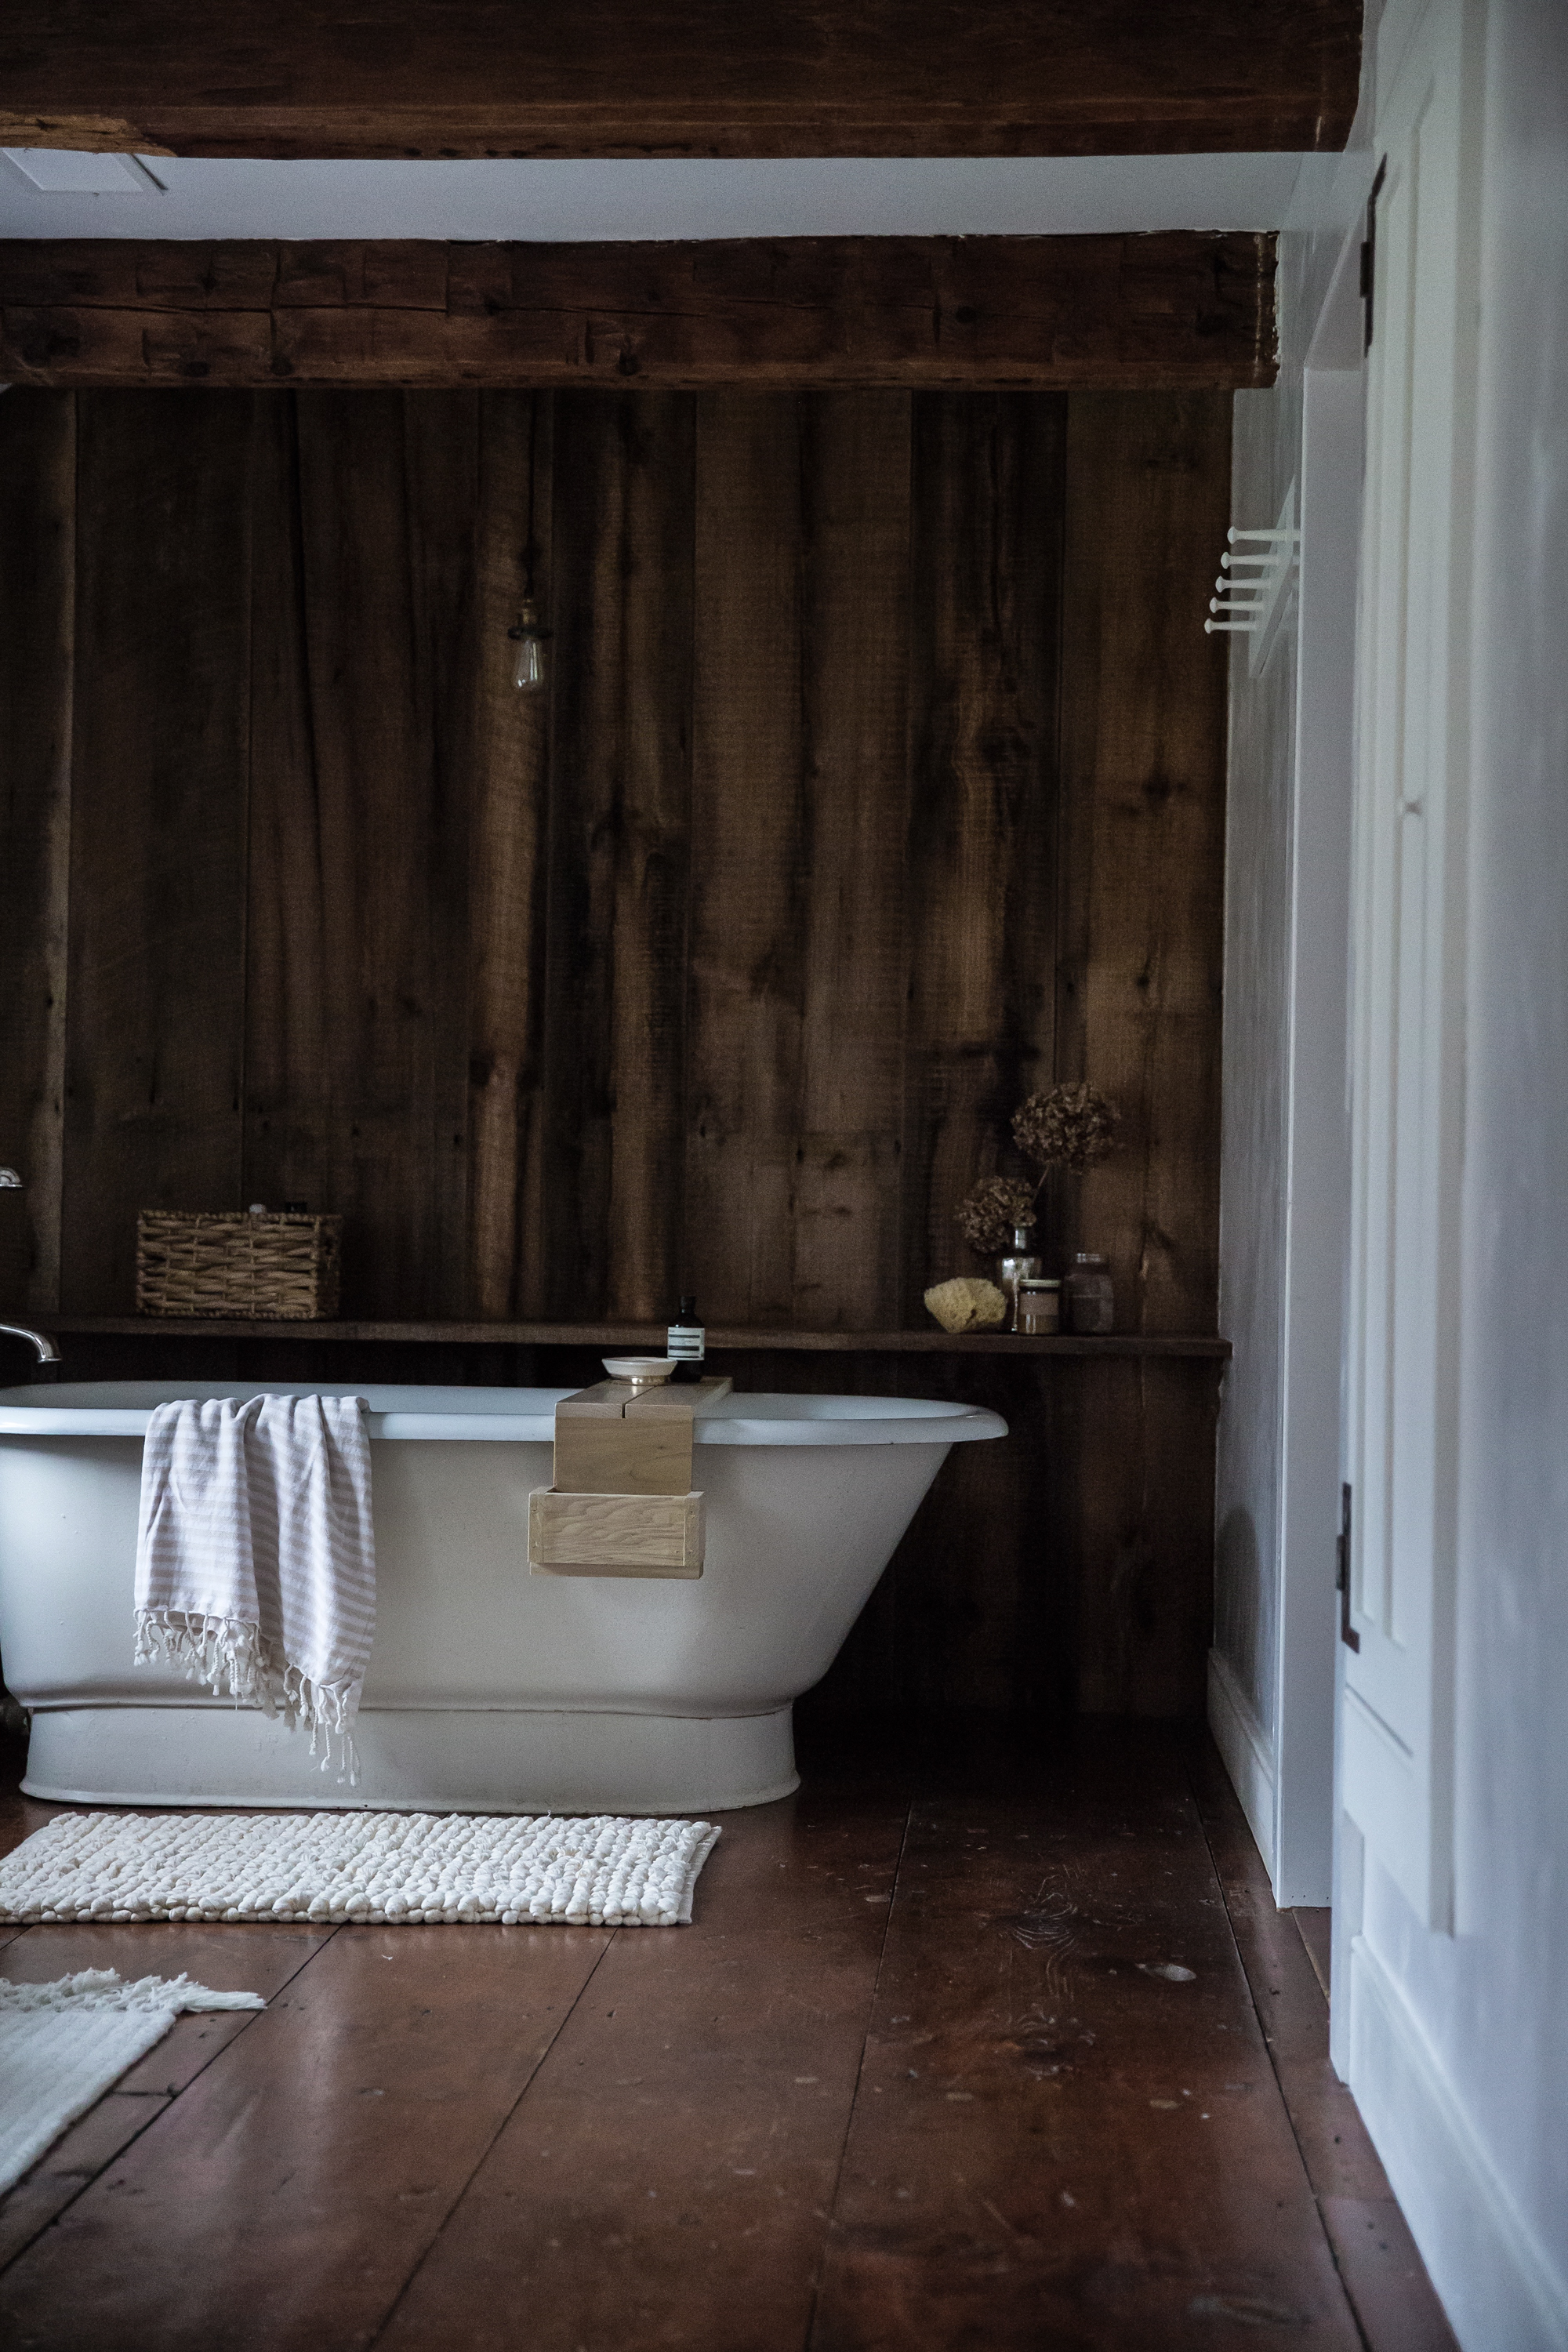 Jersey-Ice-Cream-Co-Old-Chatham-paneled-bath